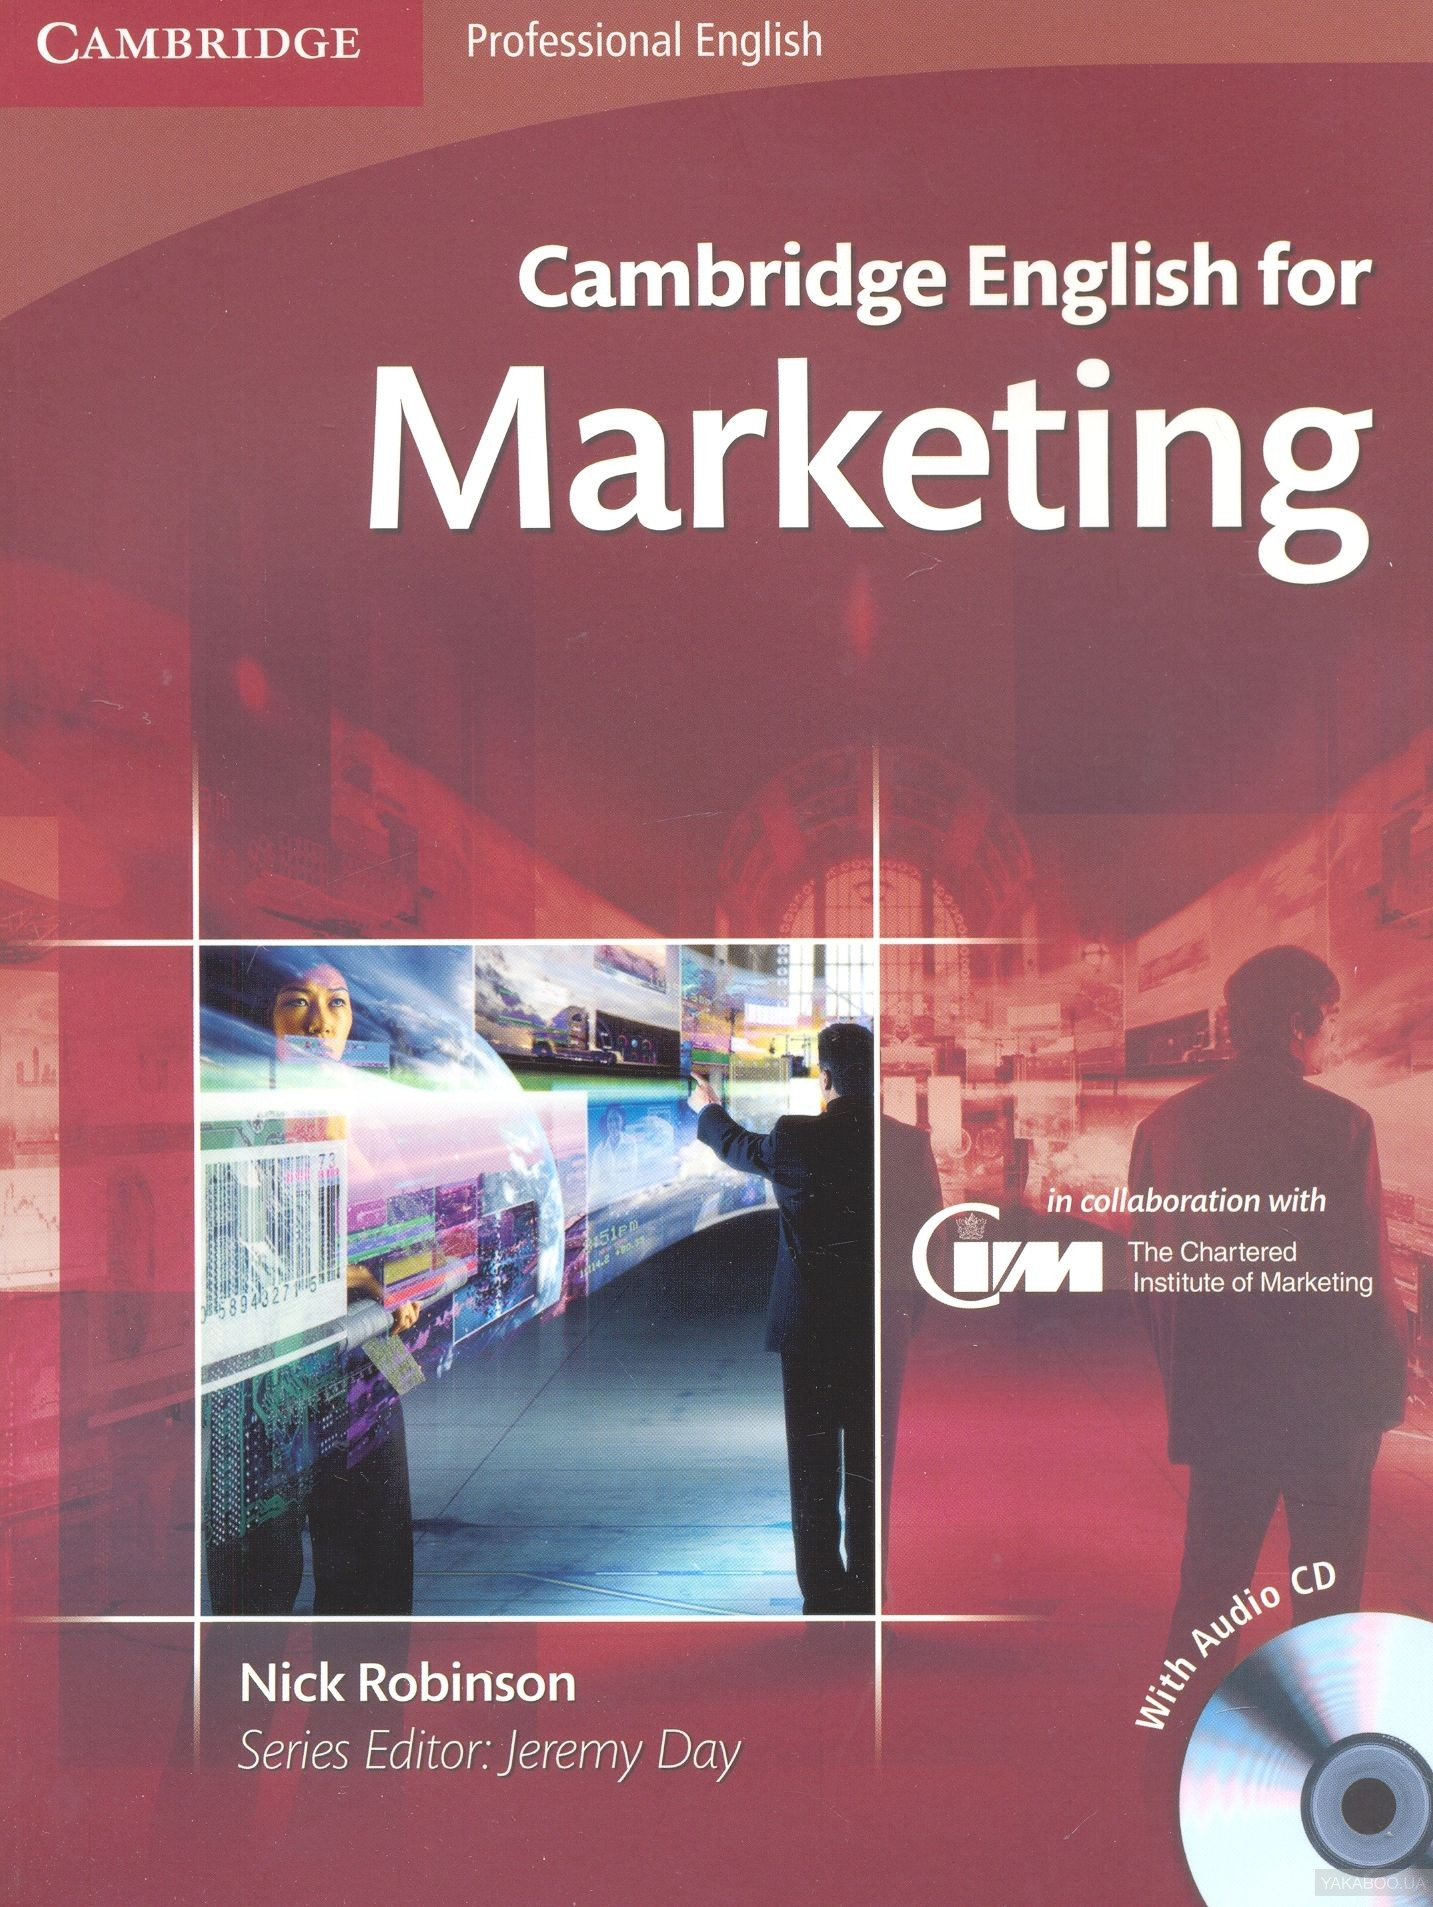 the cambridge software corporation marketing essay Welcome to cambridge network we bring people together to collaborate for shared success and to be stronger together through networking at our events, learning and recruitment activities.